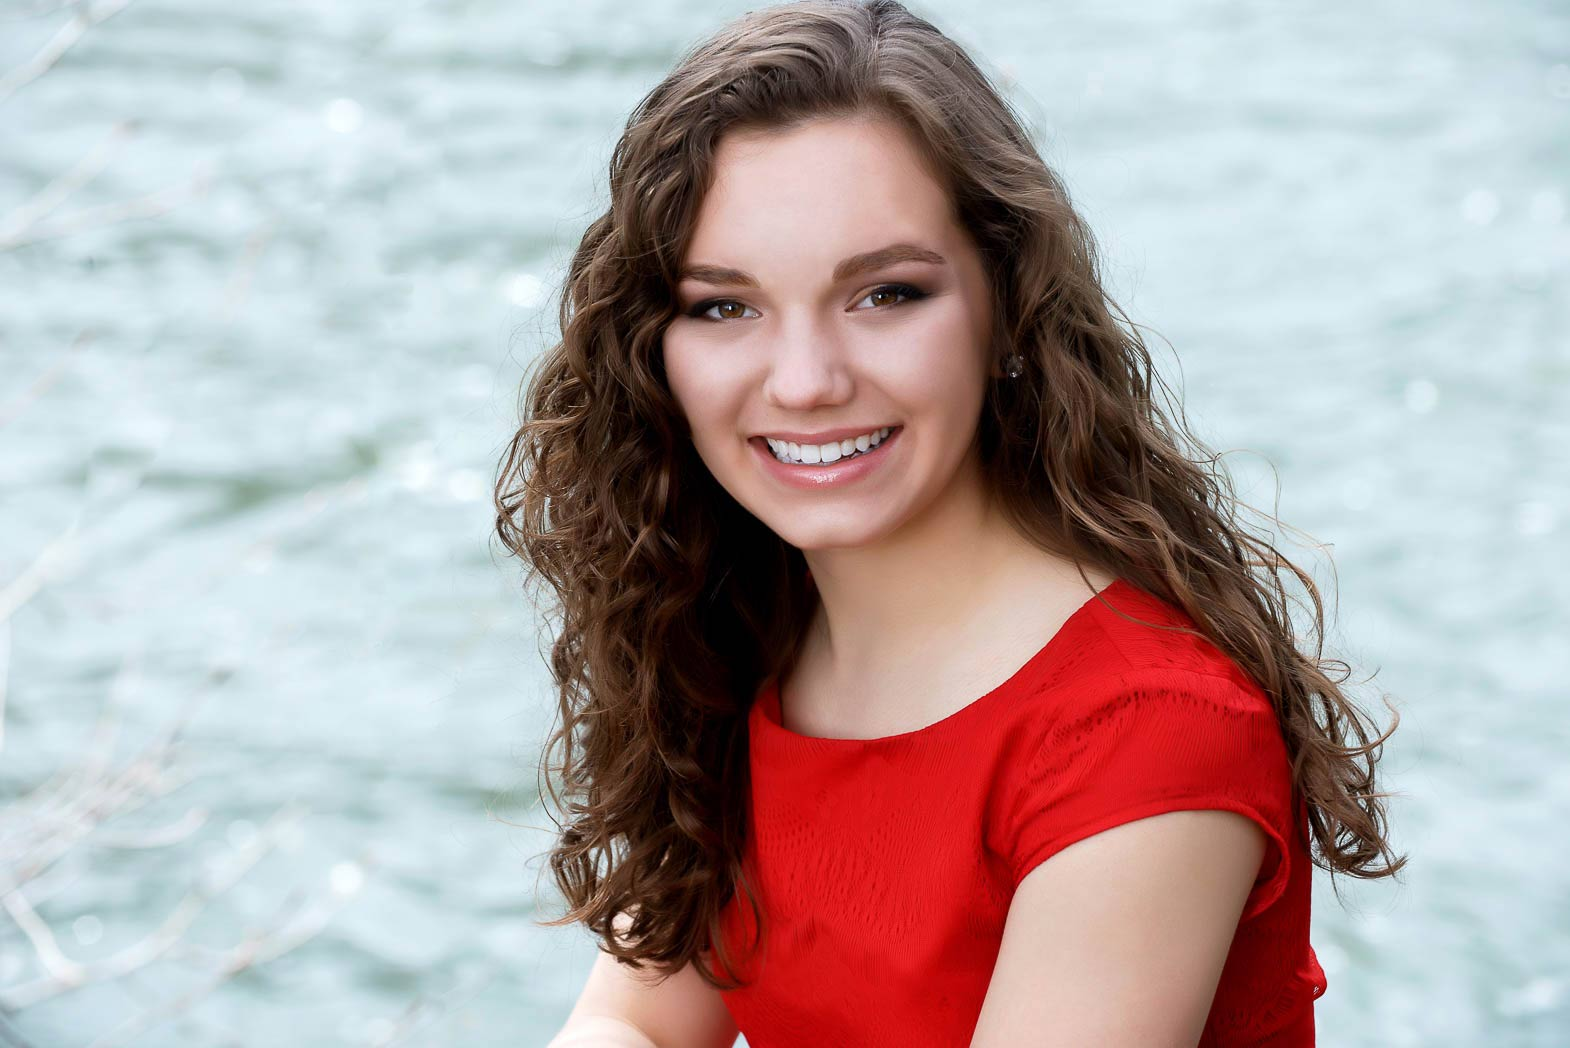 senior portraits of girl by river smiling